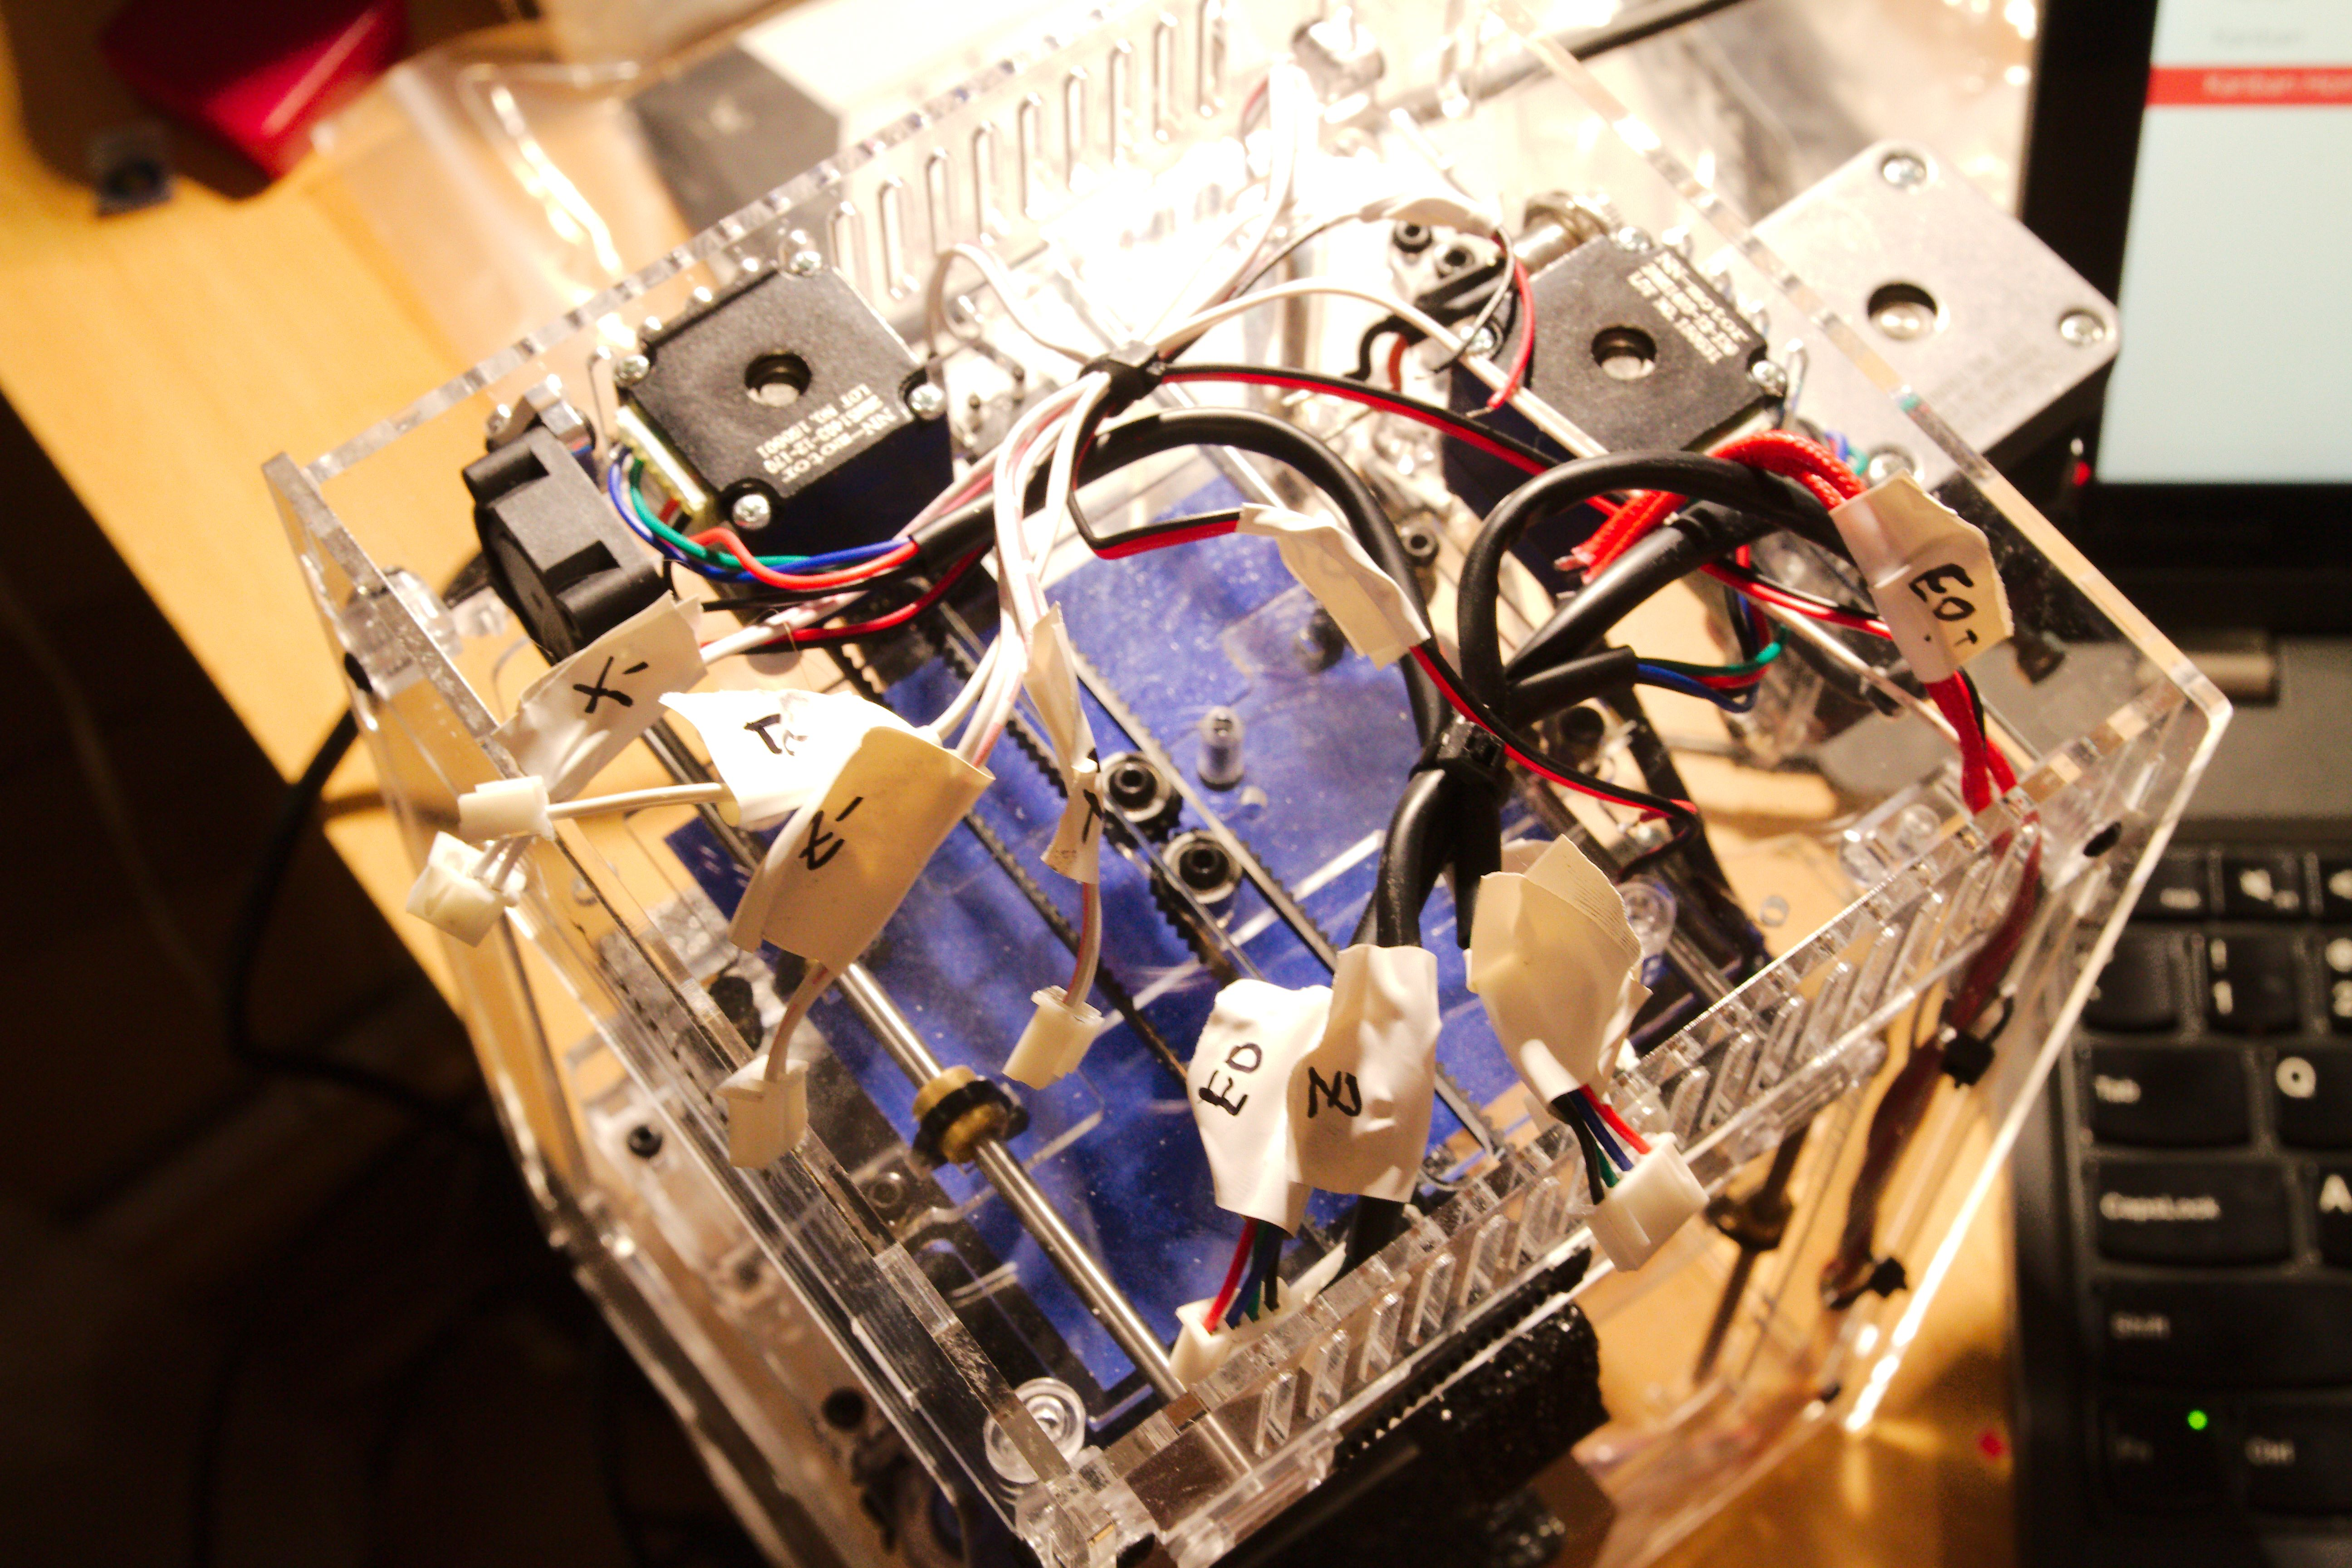 Mini 3d Printer From Hobbyking Running With Cramps Board And Ramps 14 The Has Approximately Same Size As However Including Bbb Is Slightly Thicker Than